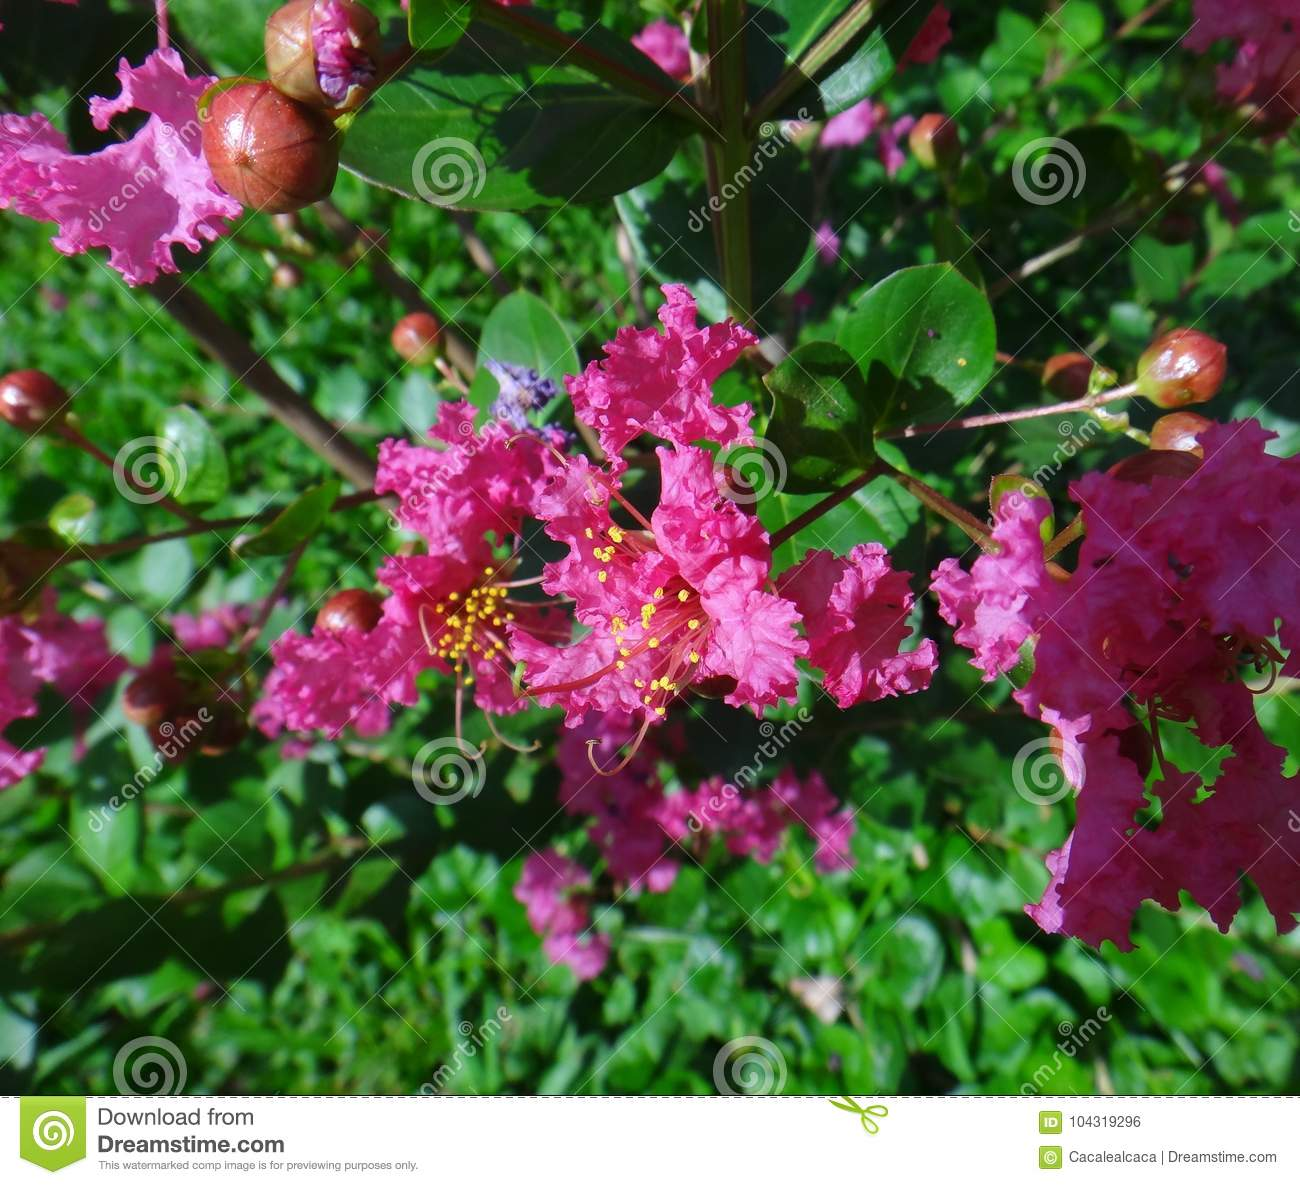 Dark pink crape myrtle flower stock photo image of blooming download dark pink crape myrtle flower stock photo image of blooming detail 104319296 mightylinksfo